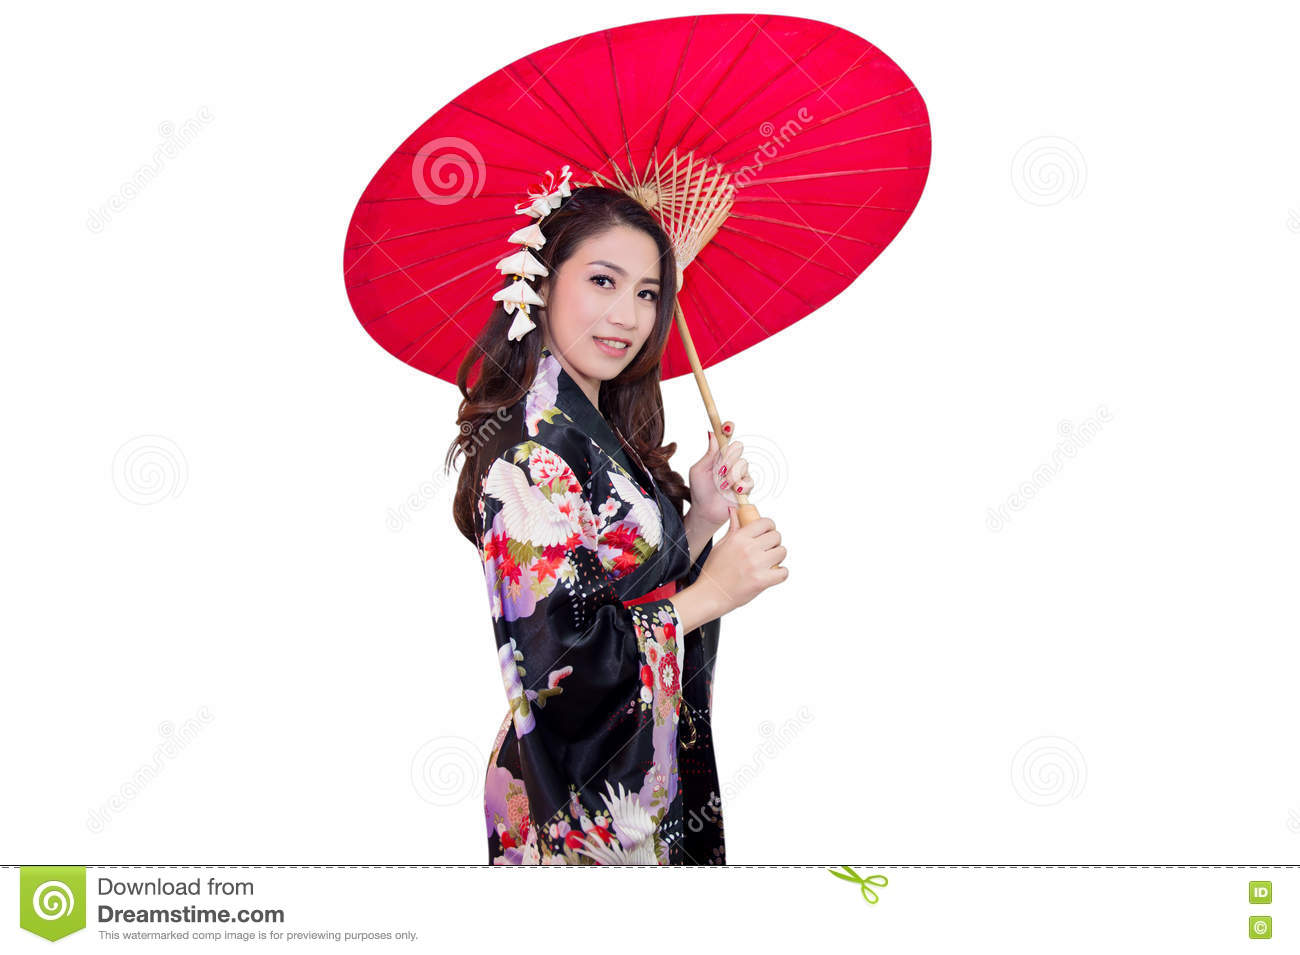 bfe1a8deb1a4e Beautiful young asian woman wearing traditional japanese kimono with red  umbrella isolated on white background.